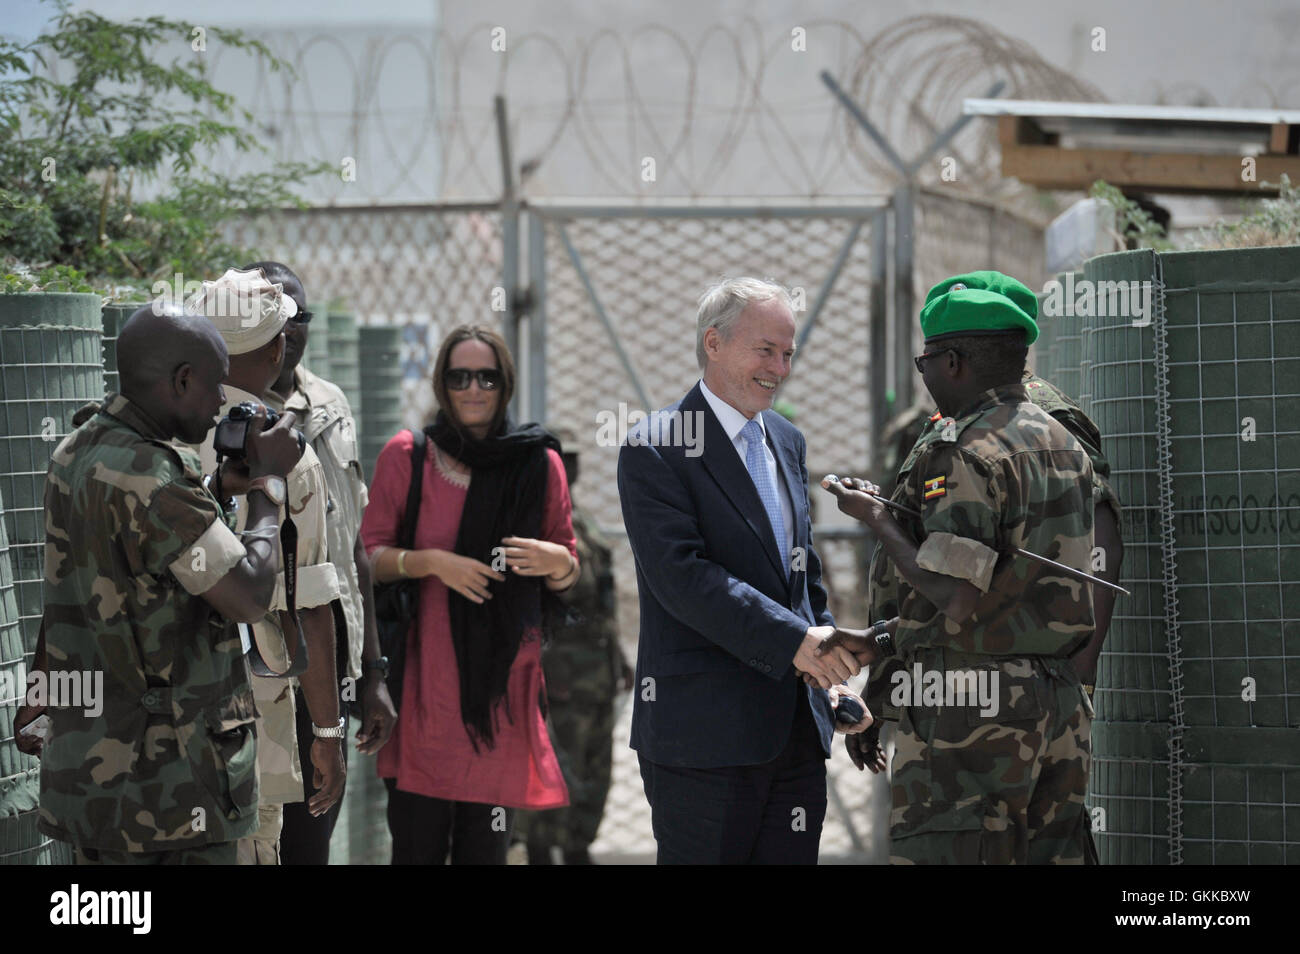 The UN's Special Represntative of the Secretary-General for Somalia, Nicholas Kay, greets AMISOM officials as - Stock Image